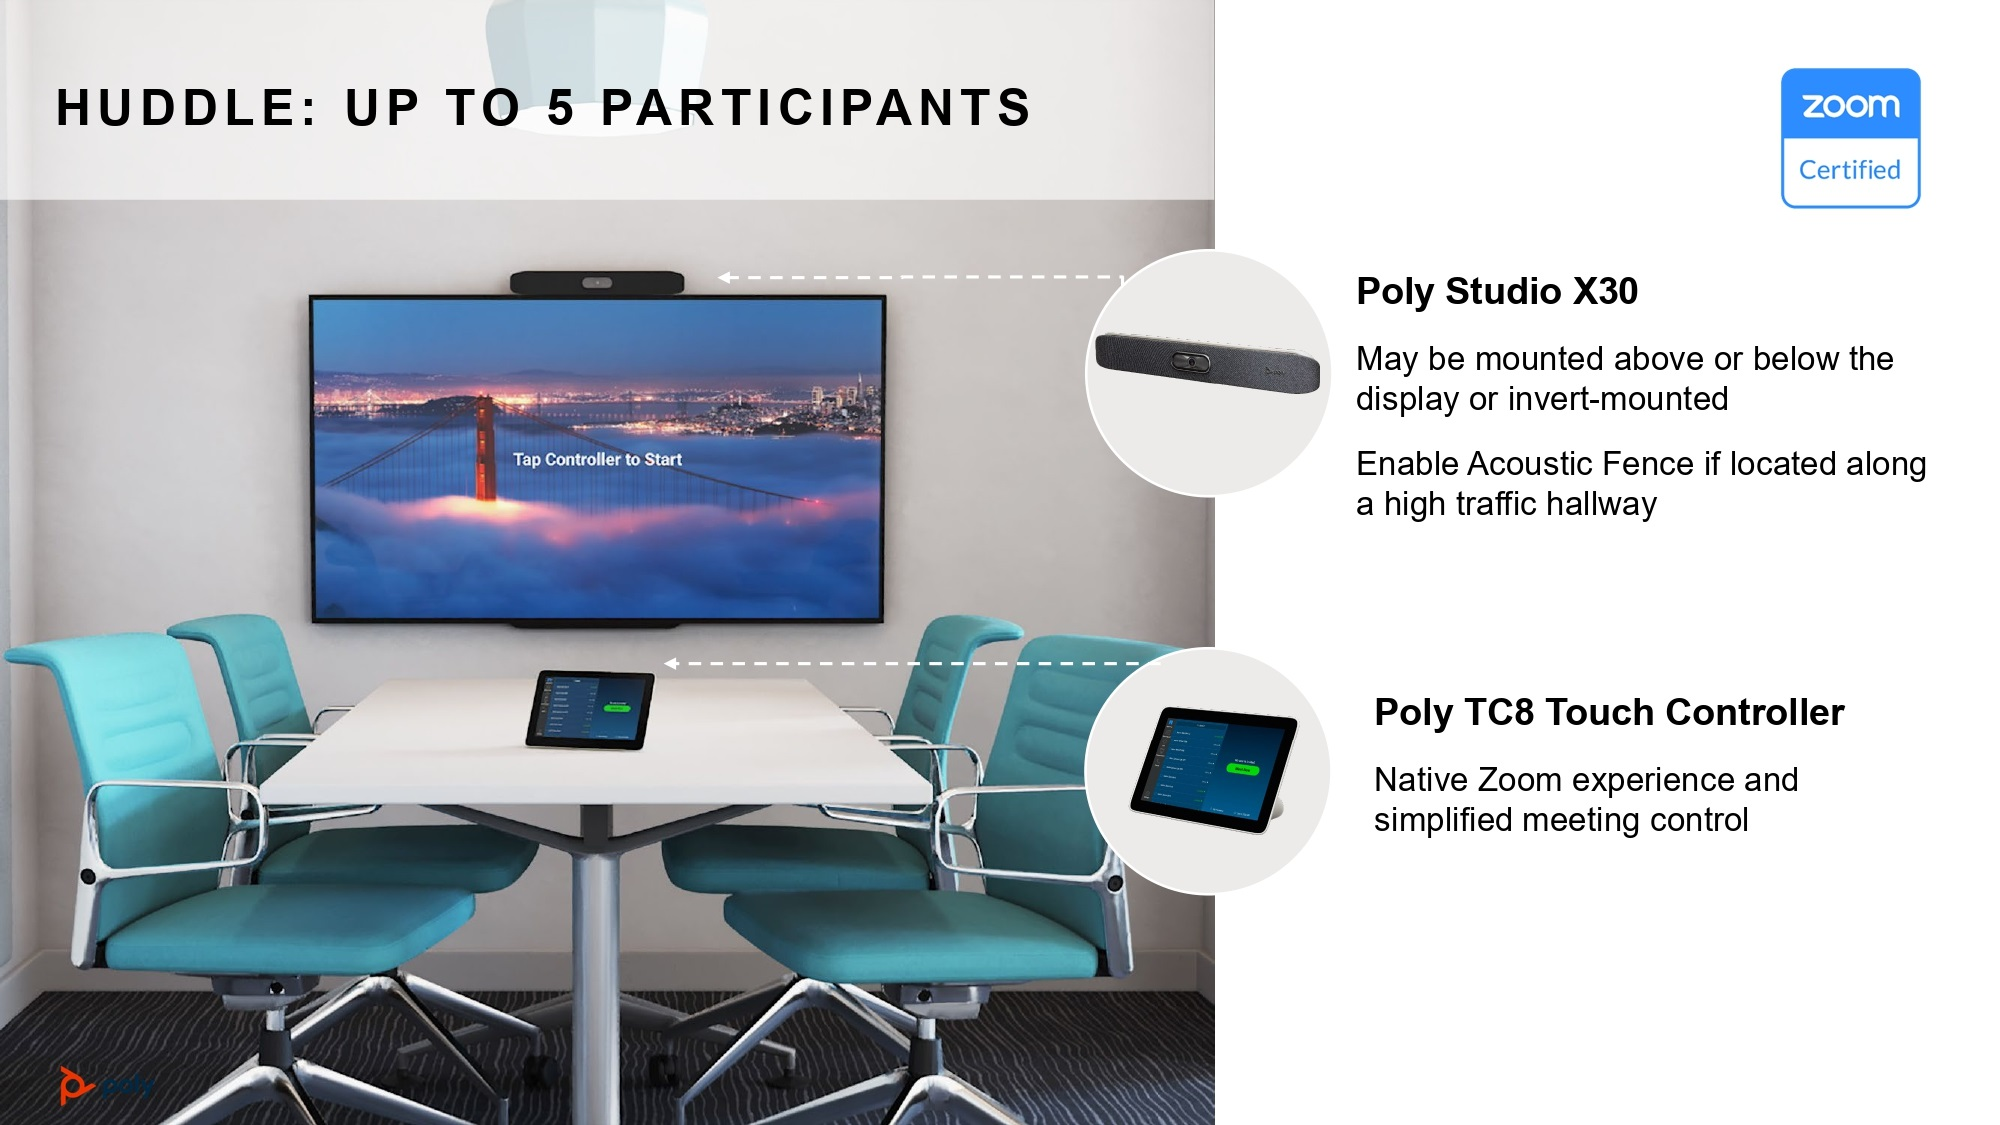 Small Room Video Conferencing Solutions From Jabra, Poly, Polycom and Plantronics | LIONWARE